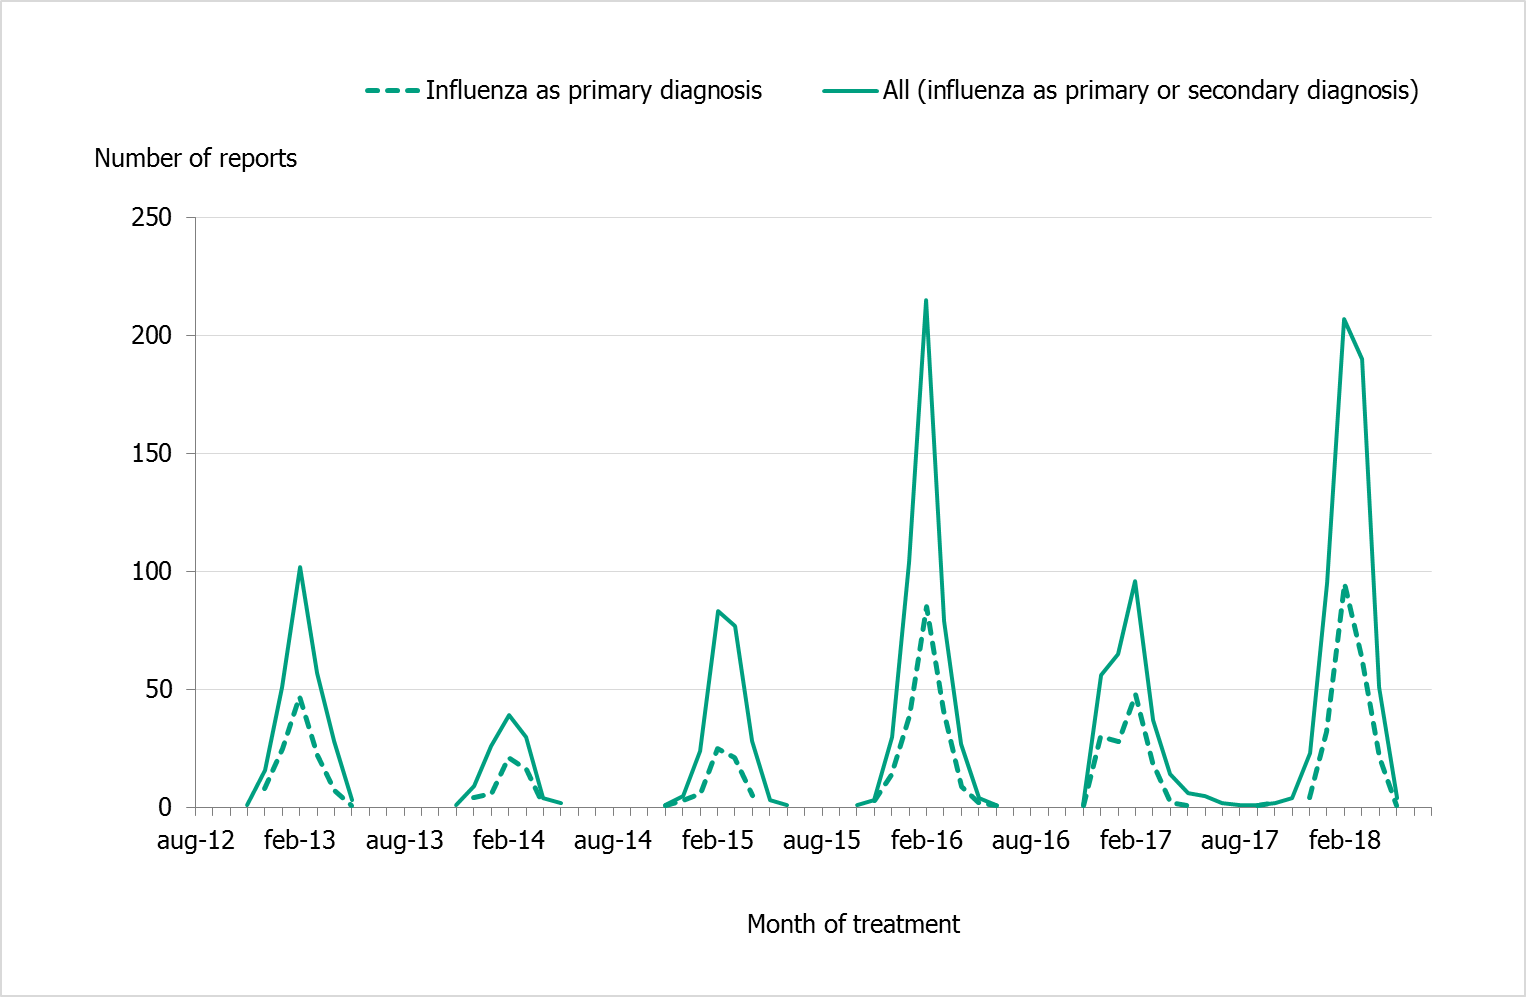 Number of patients with laboratory-confirmed influenza who received intensive care per season, six seasons. 2015-2016 and 2017-2018 are considerably higher than the other seasons.